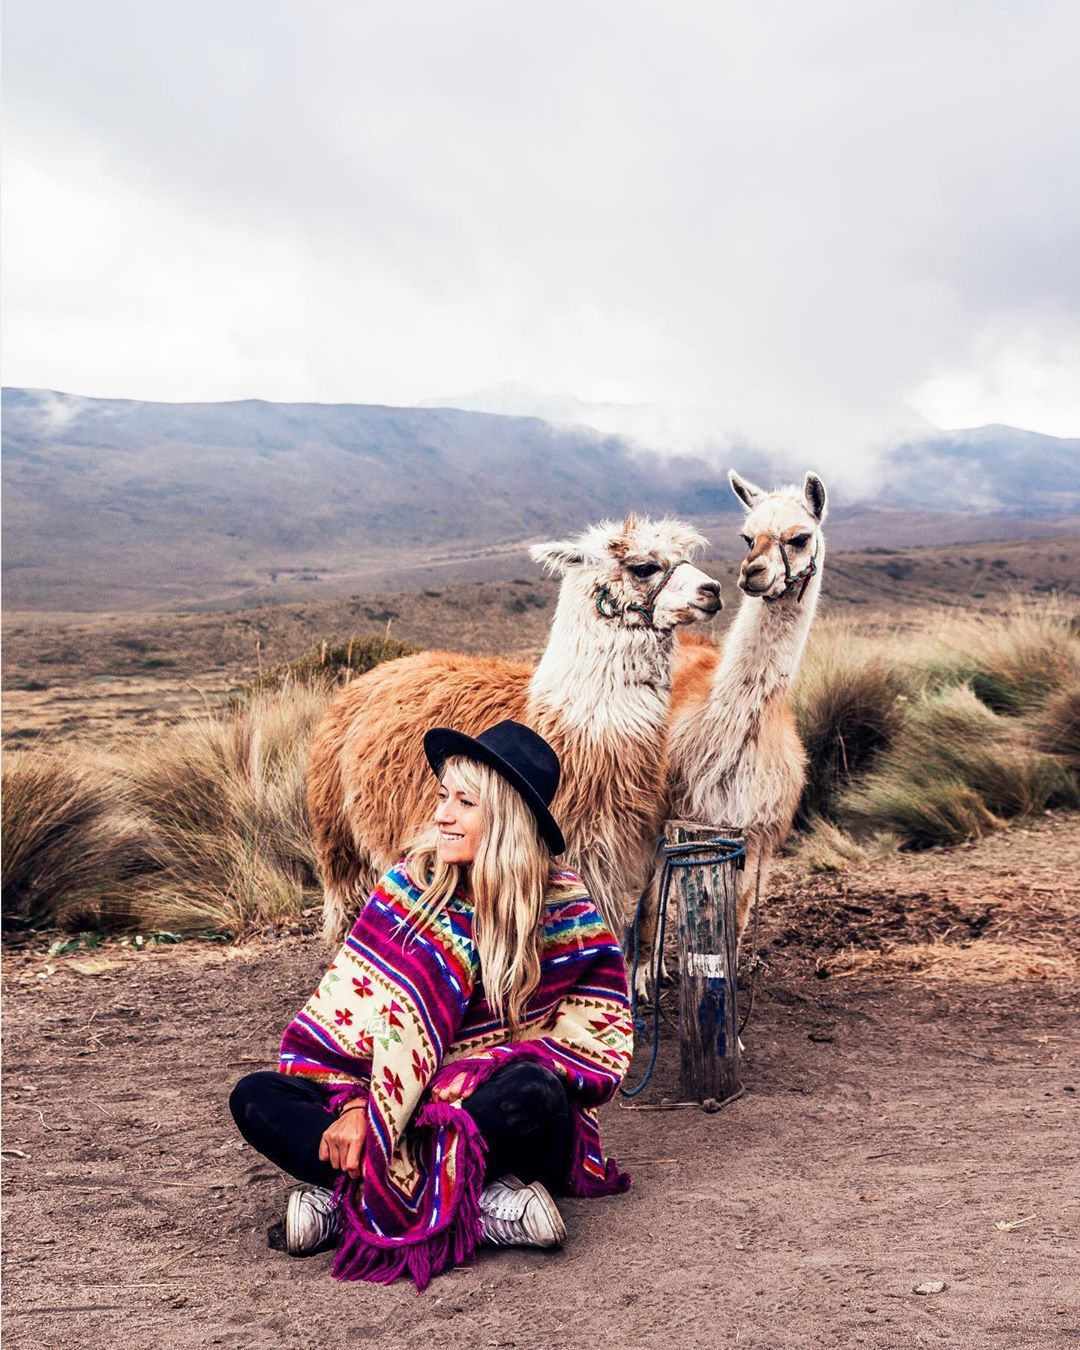 When I (Marco) was traveling around Latin America back in 2011 I had this idea/dream to adopt a Llama/Alpaca and take... #latinamericatravel